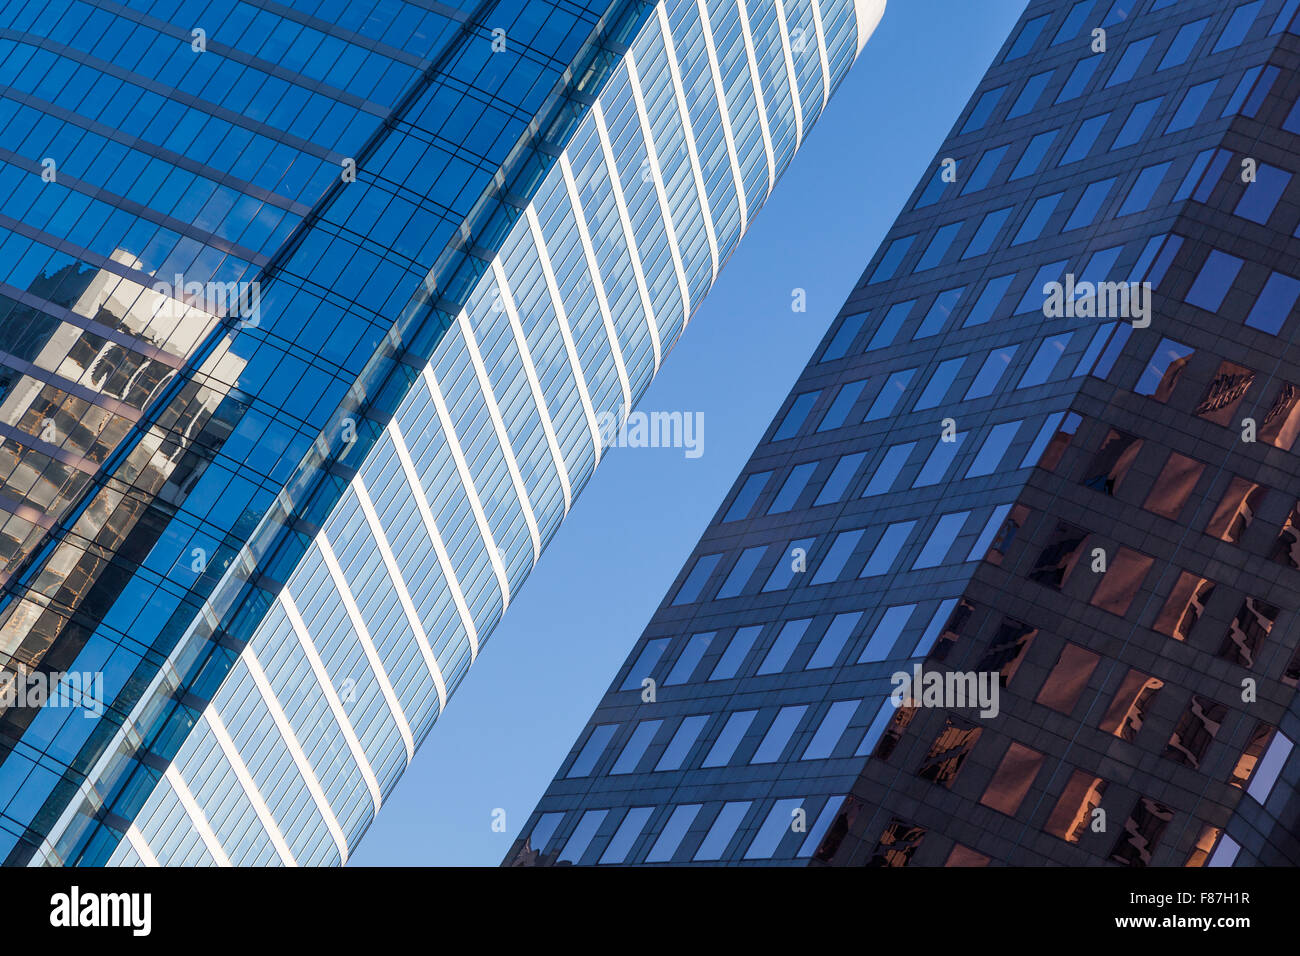 Abstract view of glass towers and reflections in Vancouver Stock Photo